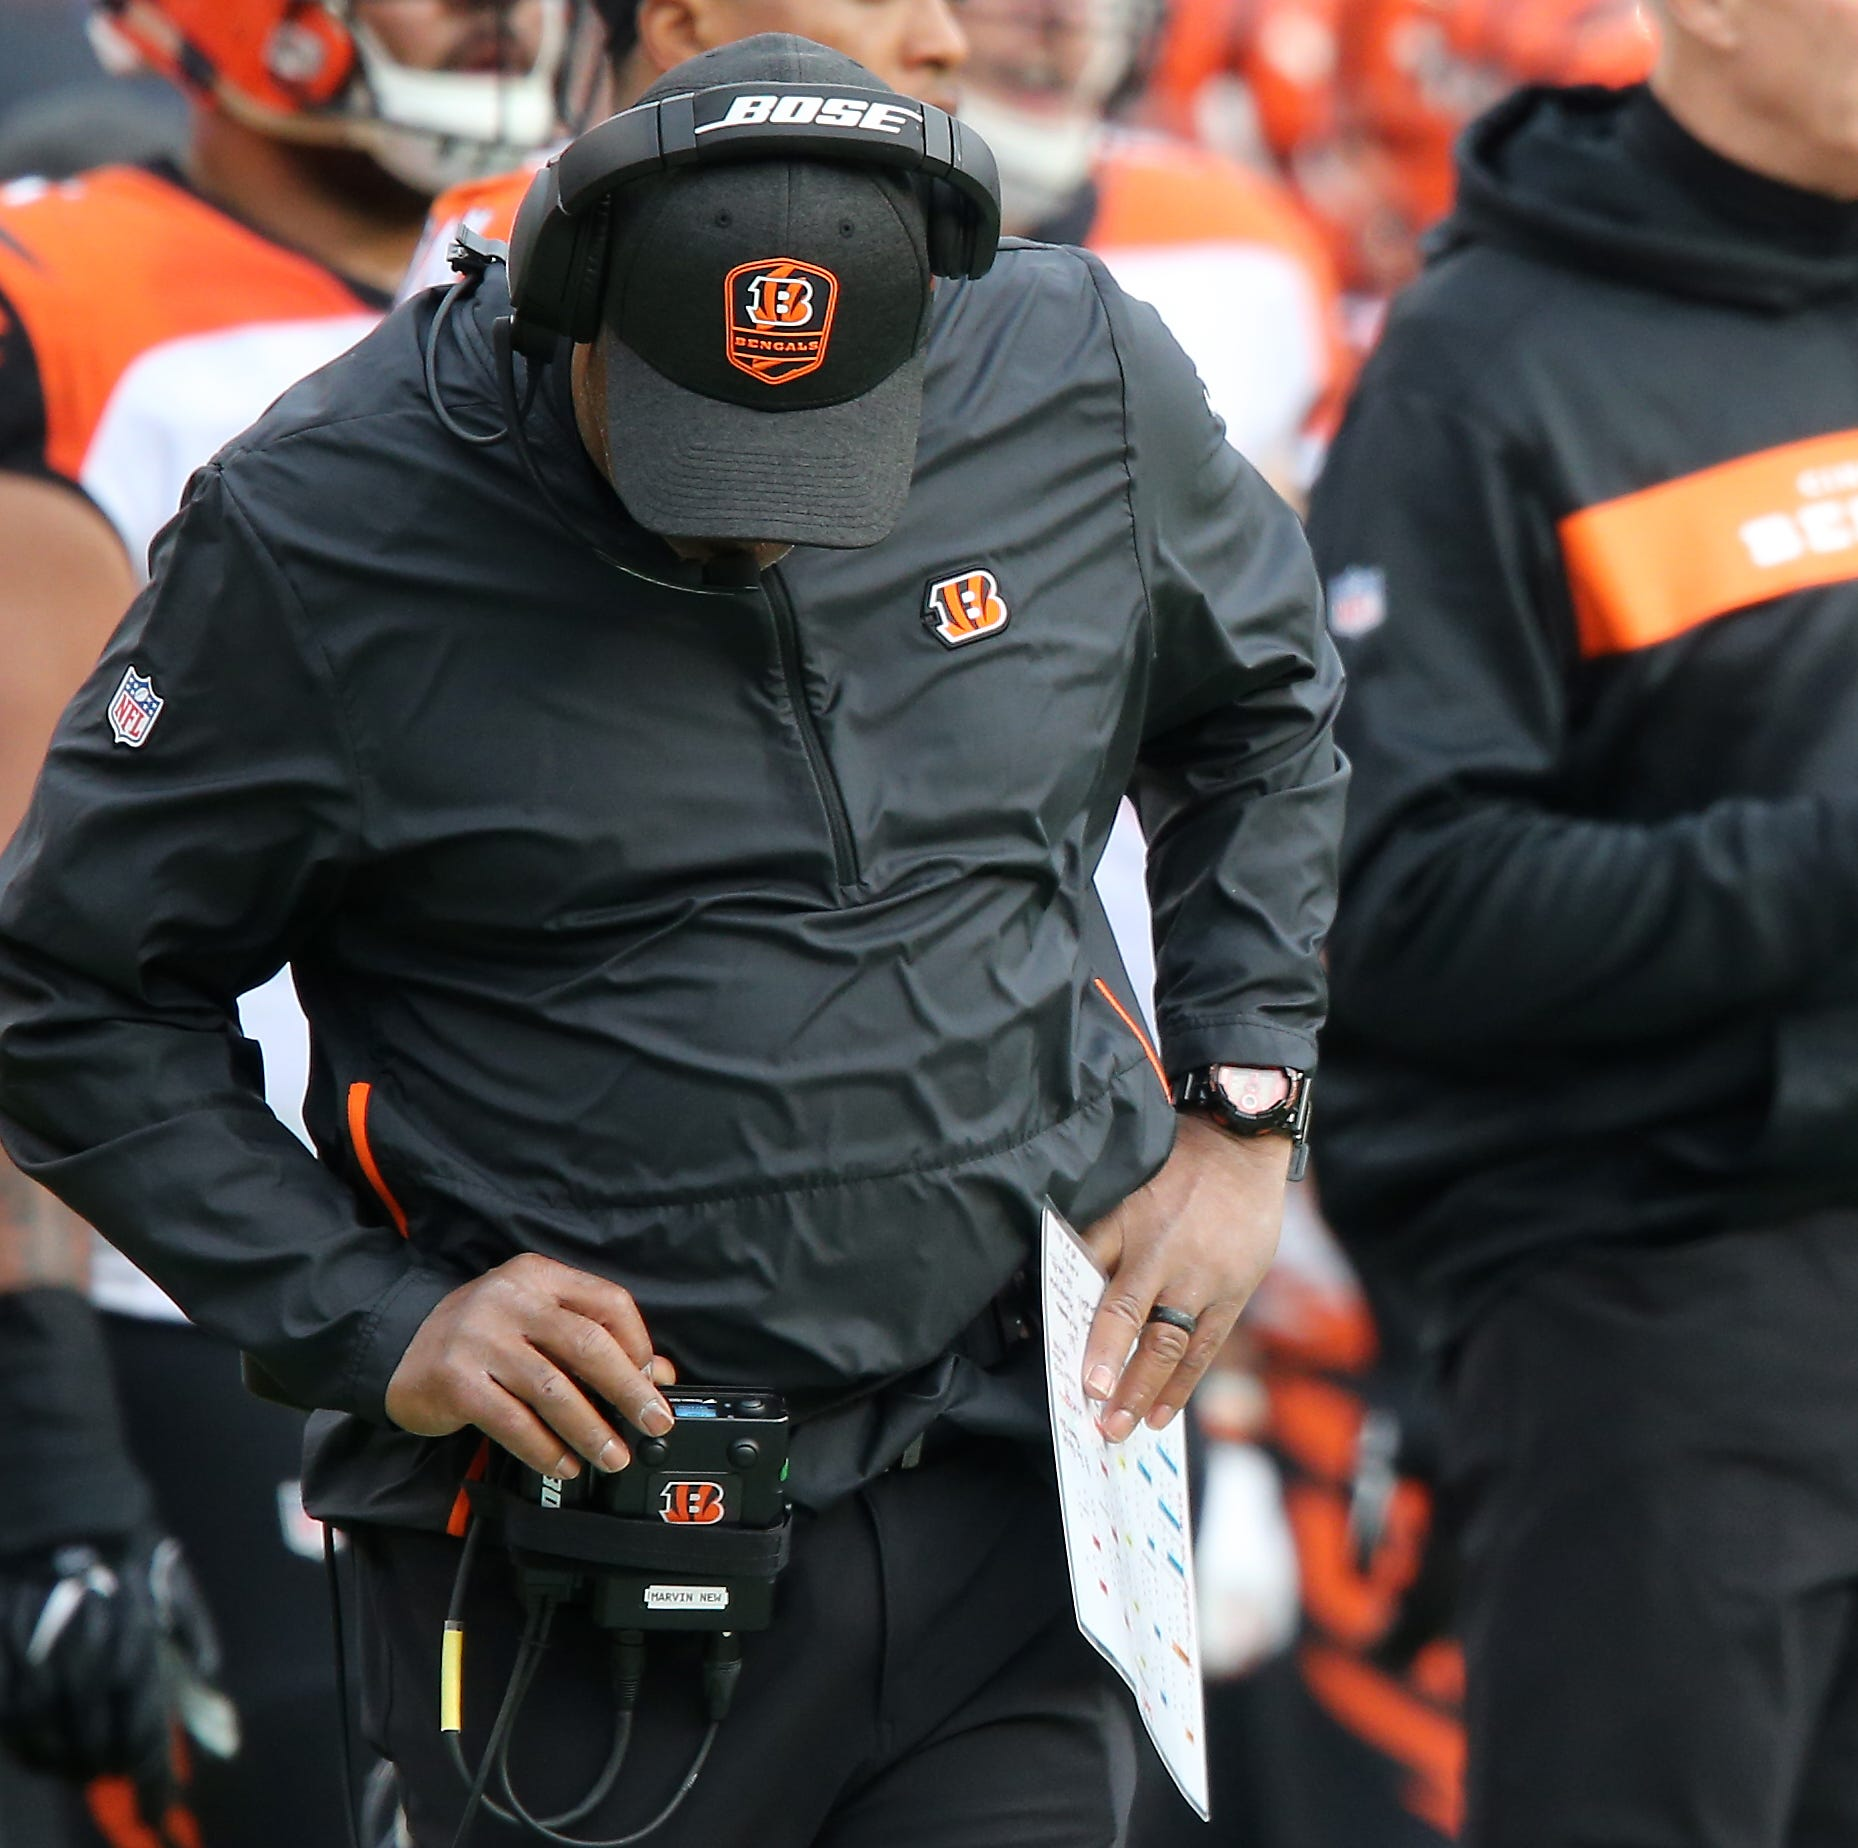 Cincinnati Bengals defense somehow encouraged by Baltimore Ravens loss